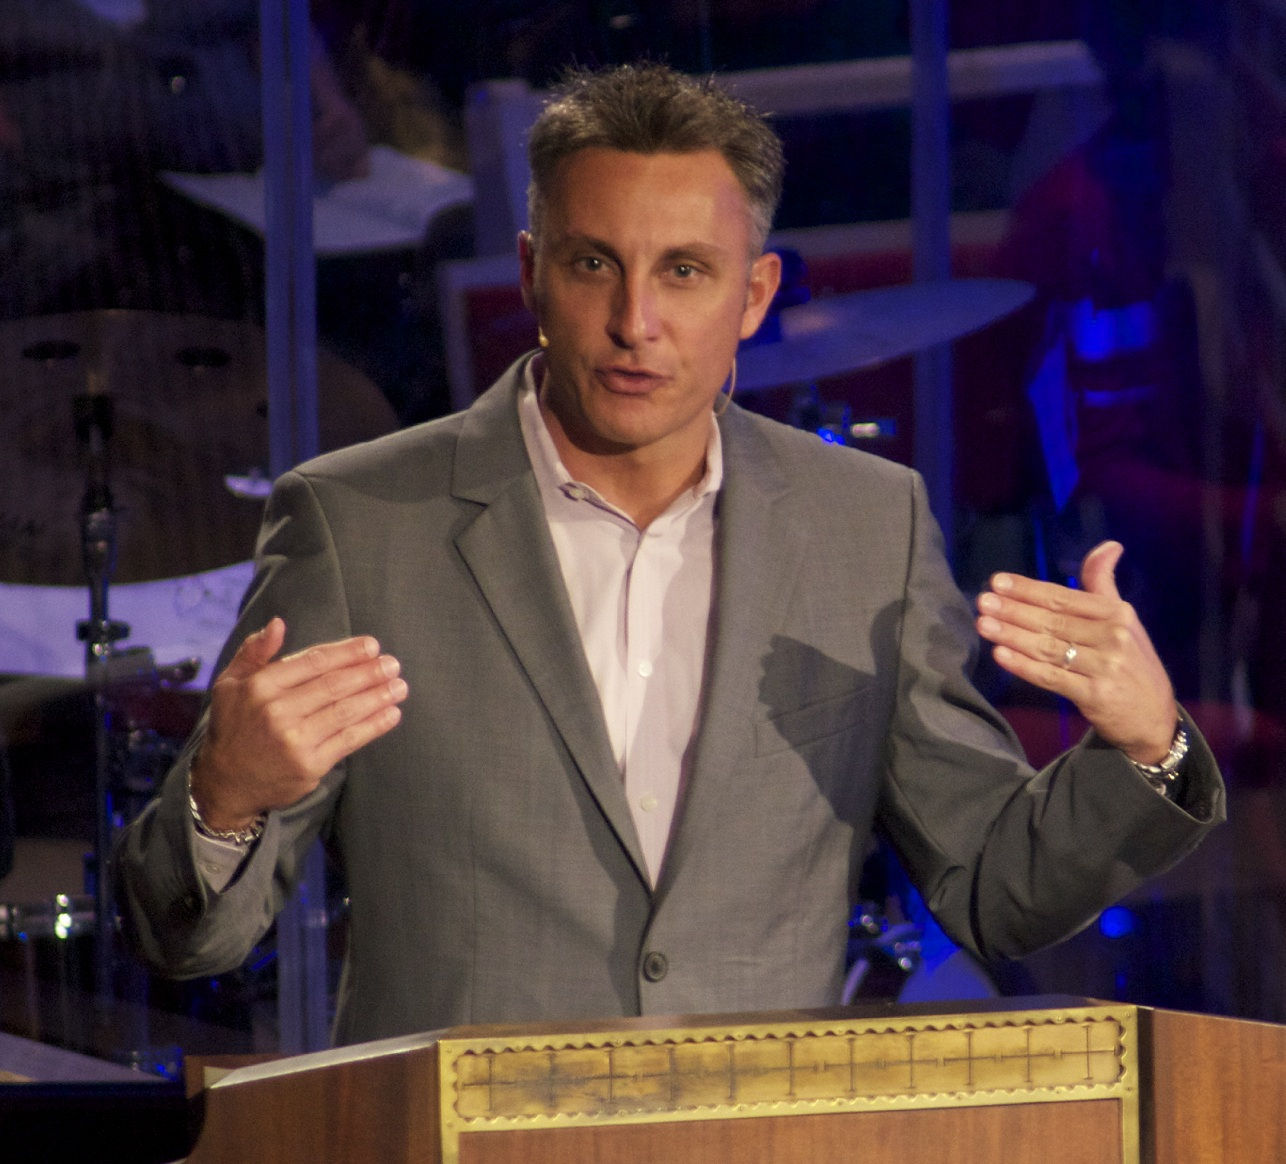 https://commons.wikimedia.org/wiki/File:Tullian_Tchividjian_cropped.jpg